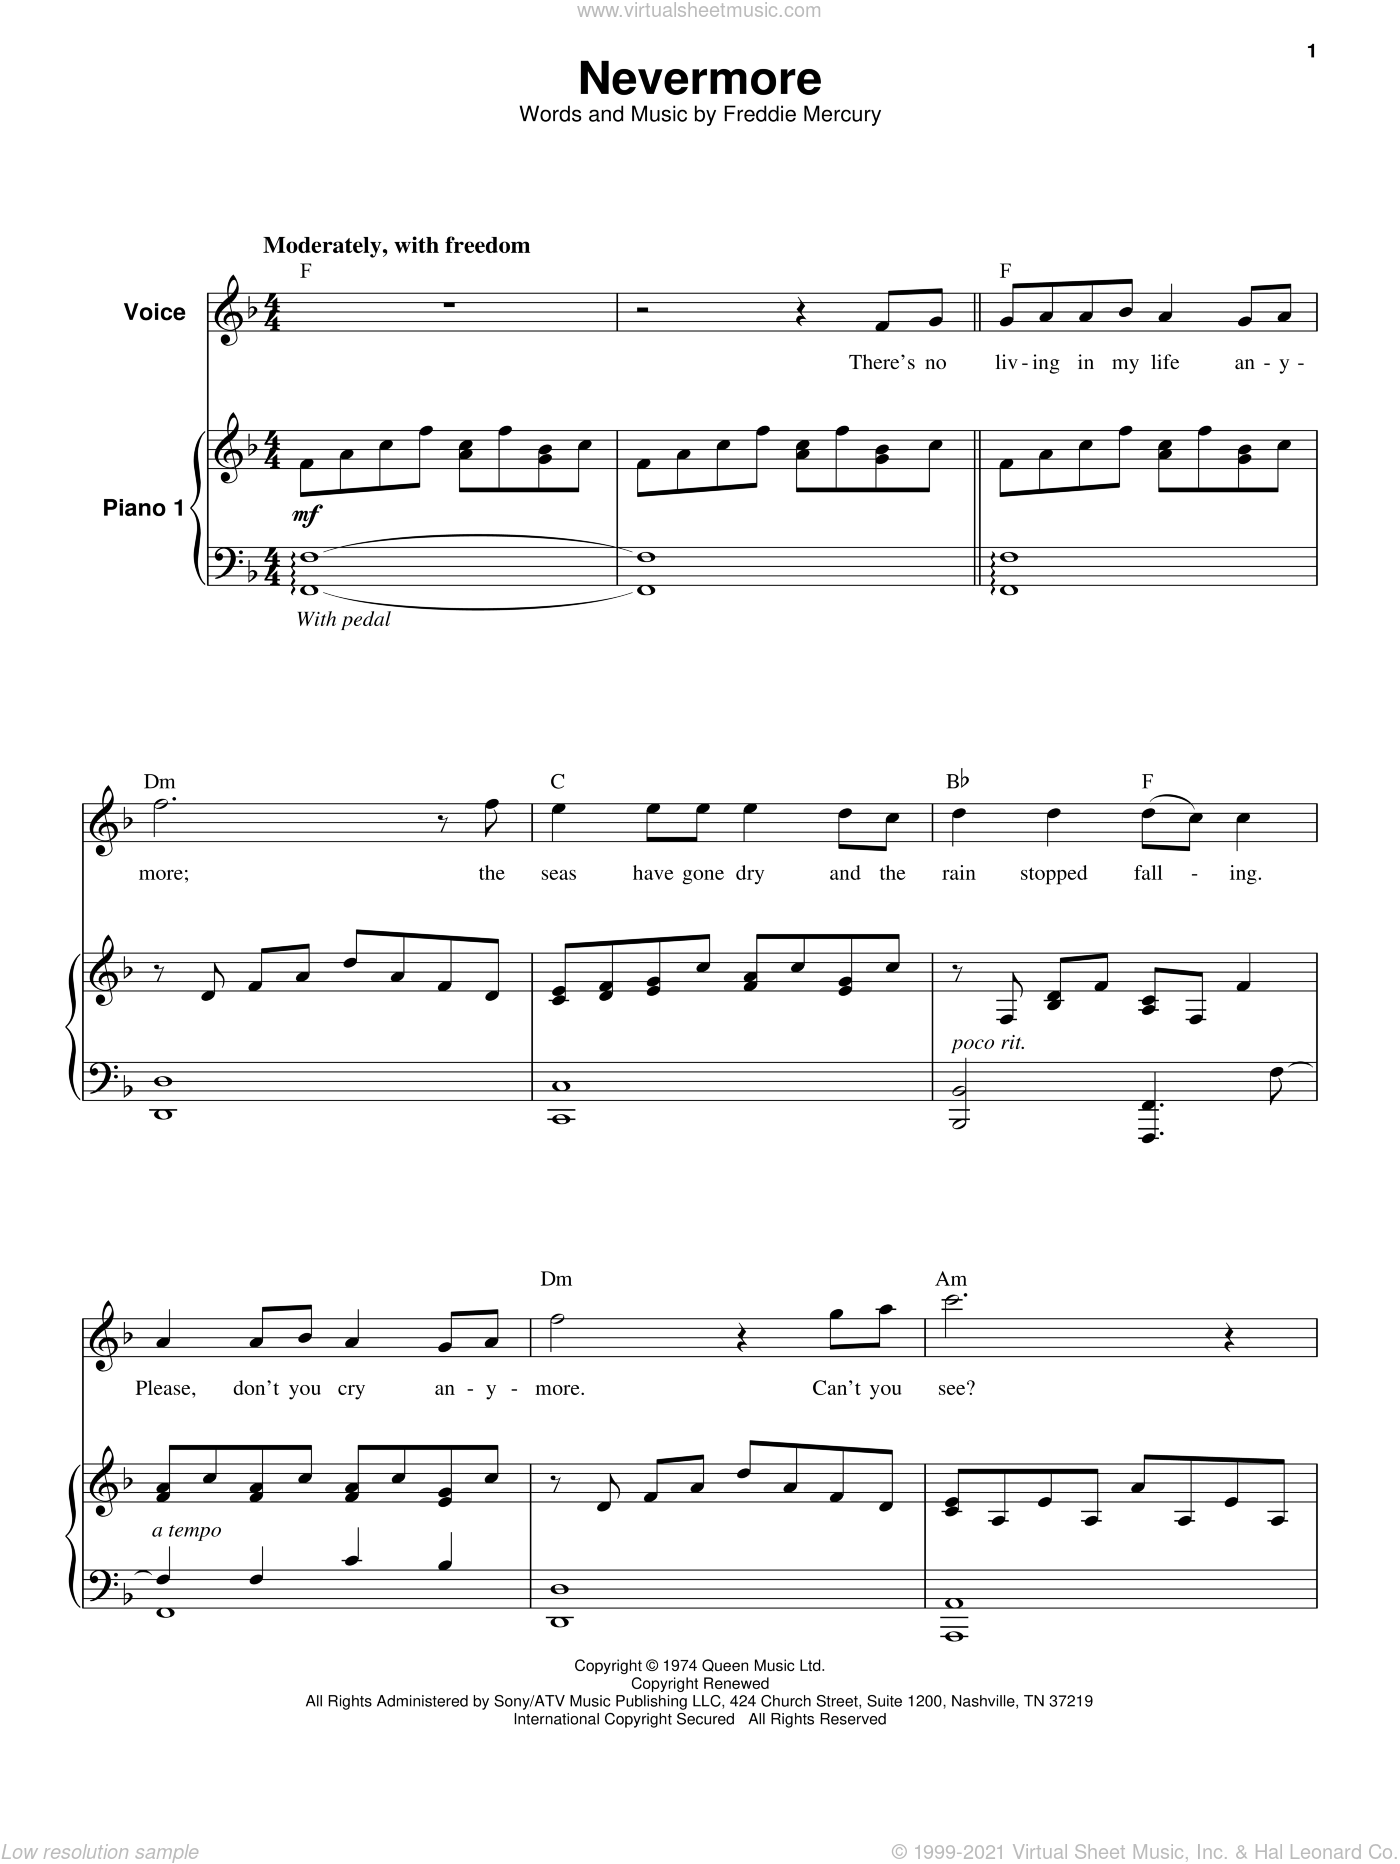 Nevermore sheet music for keyboard or piano by Queen and Freddie Mercury, intermediate skill level